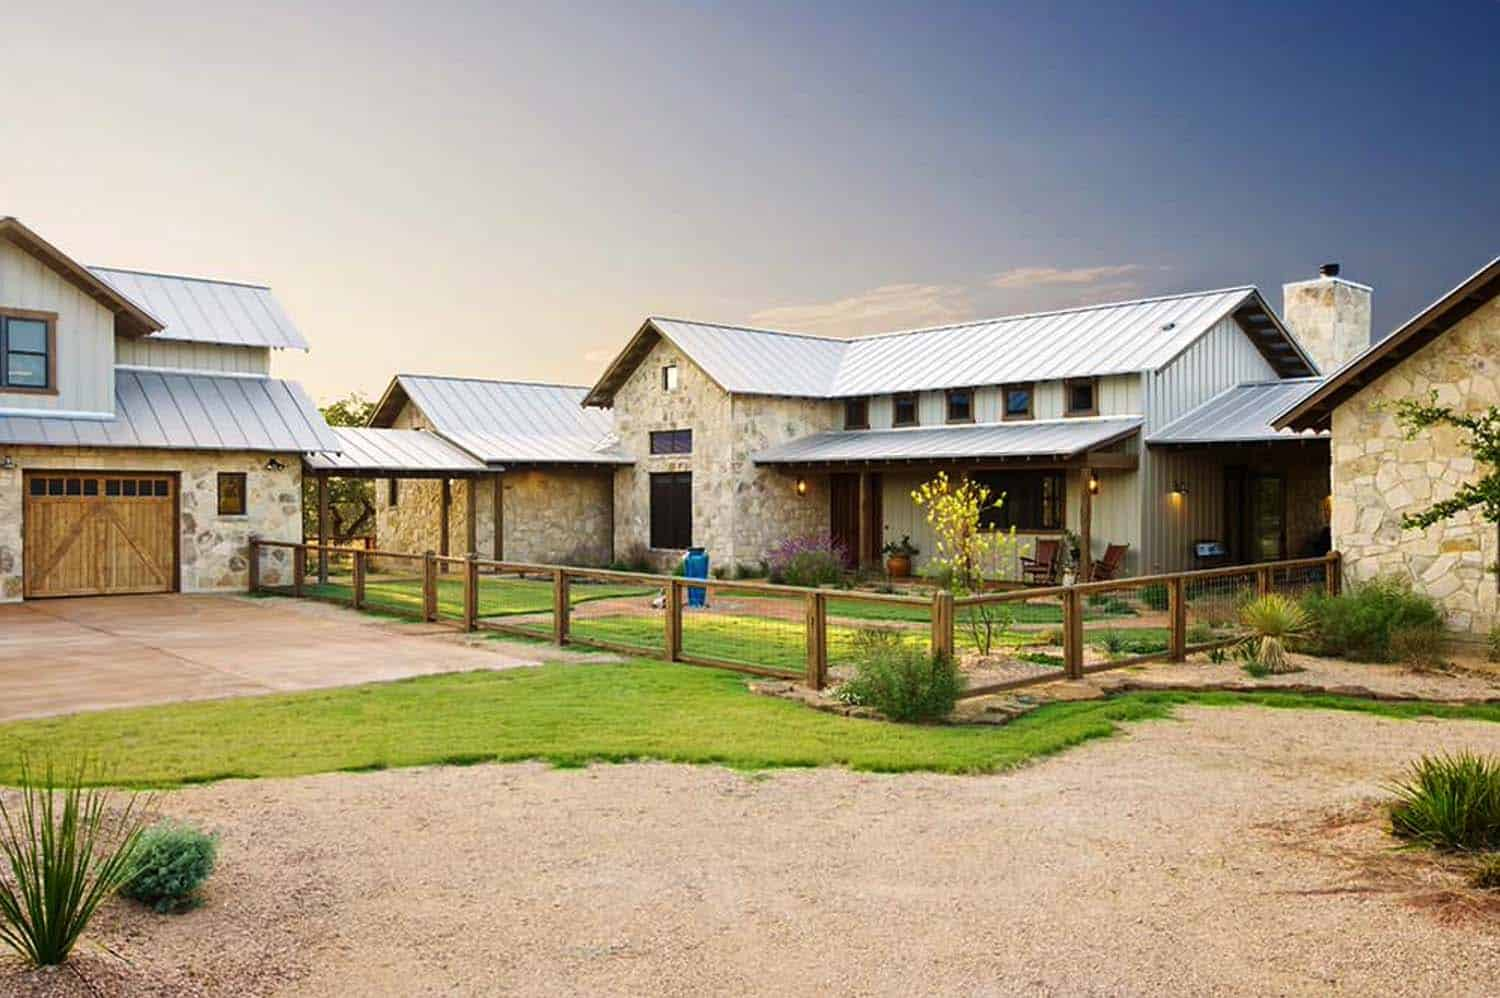 Rustic ranch house designed for family gatherings in texas for Rustic style homes